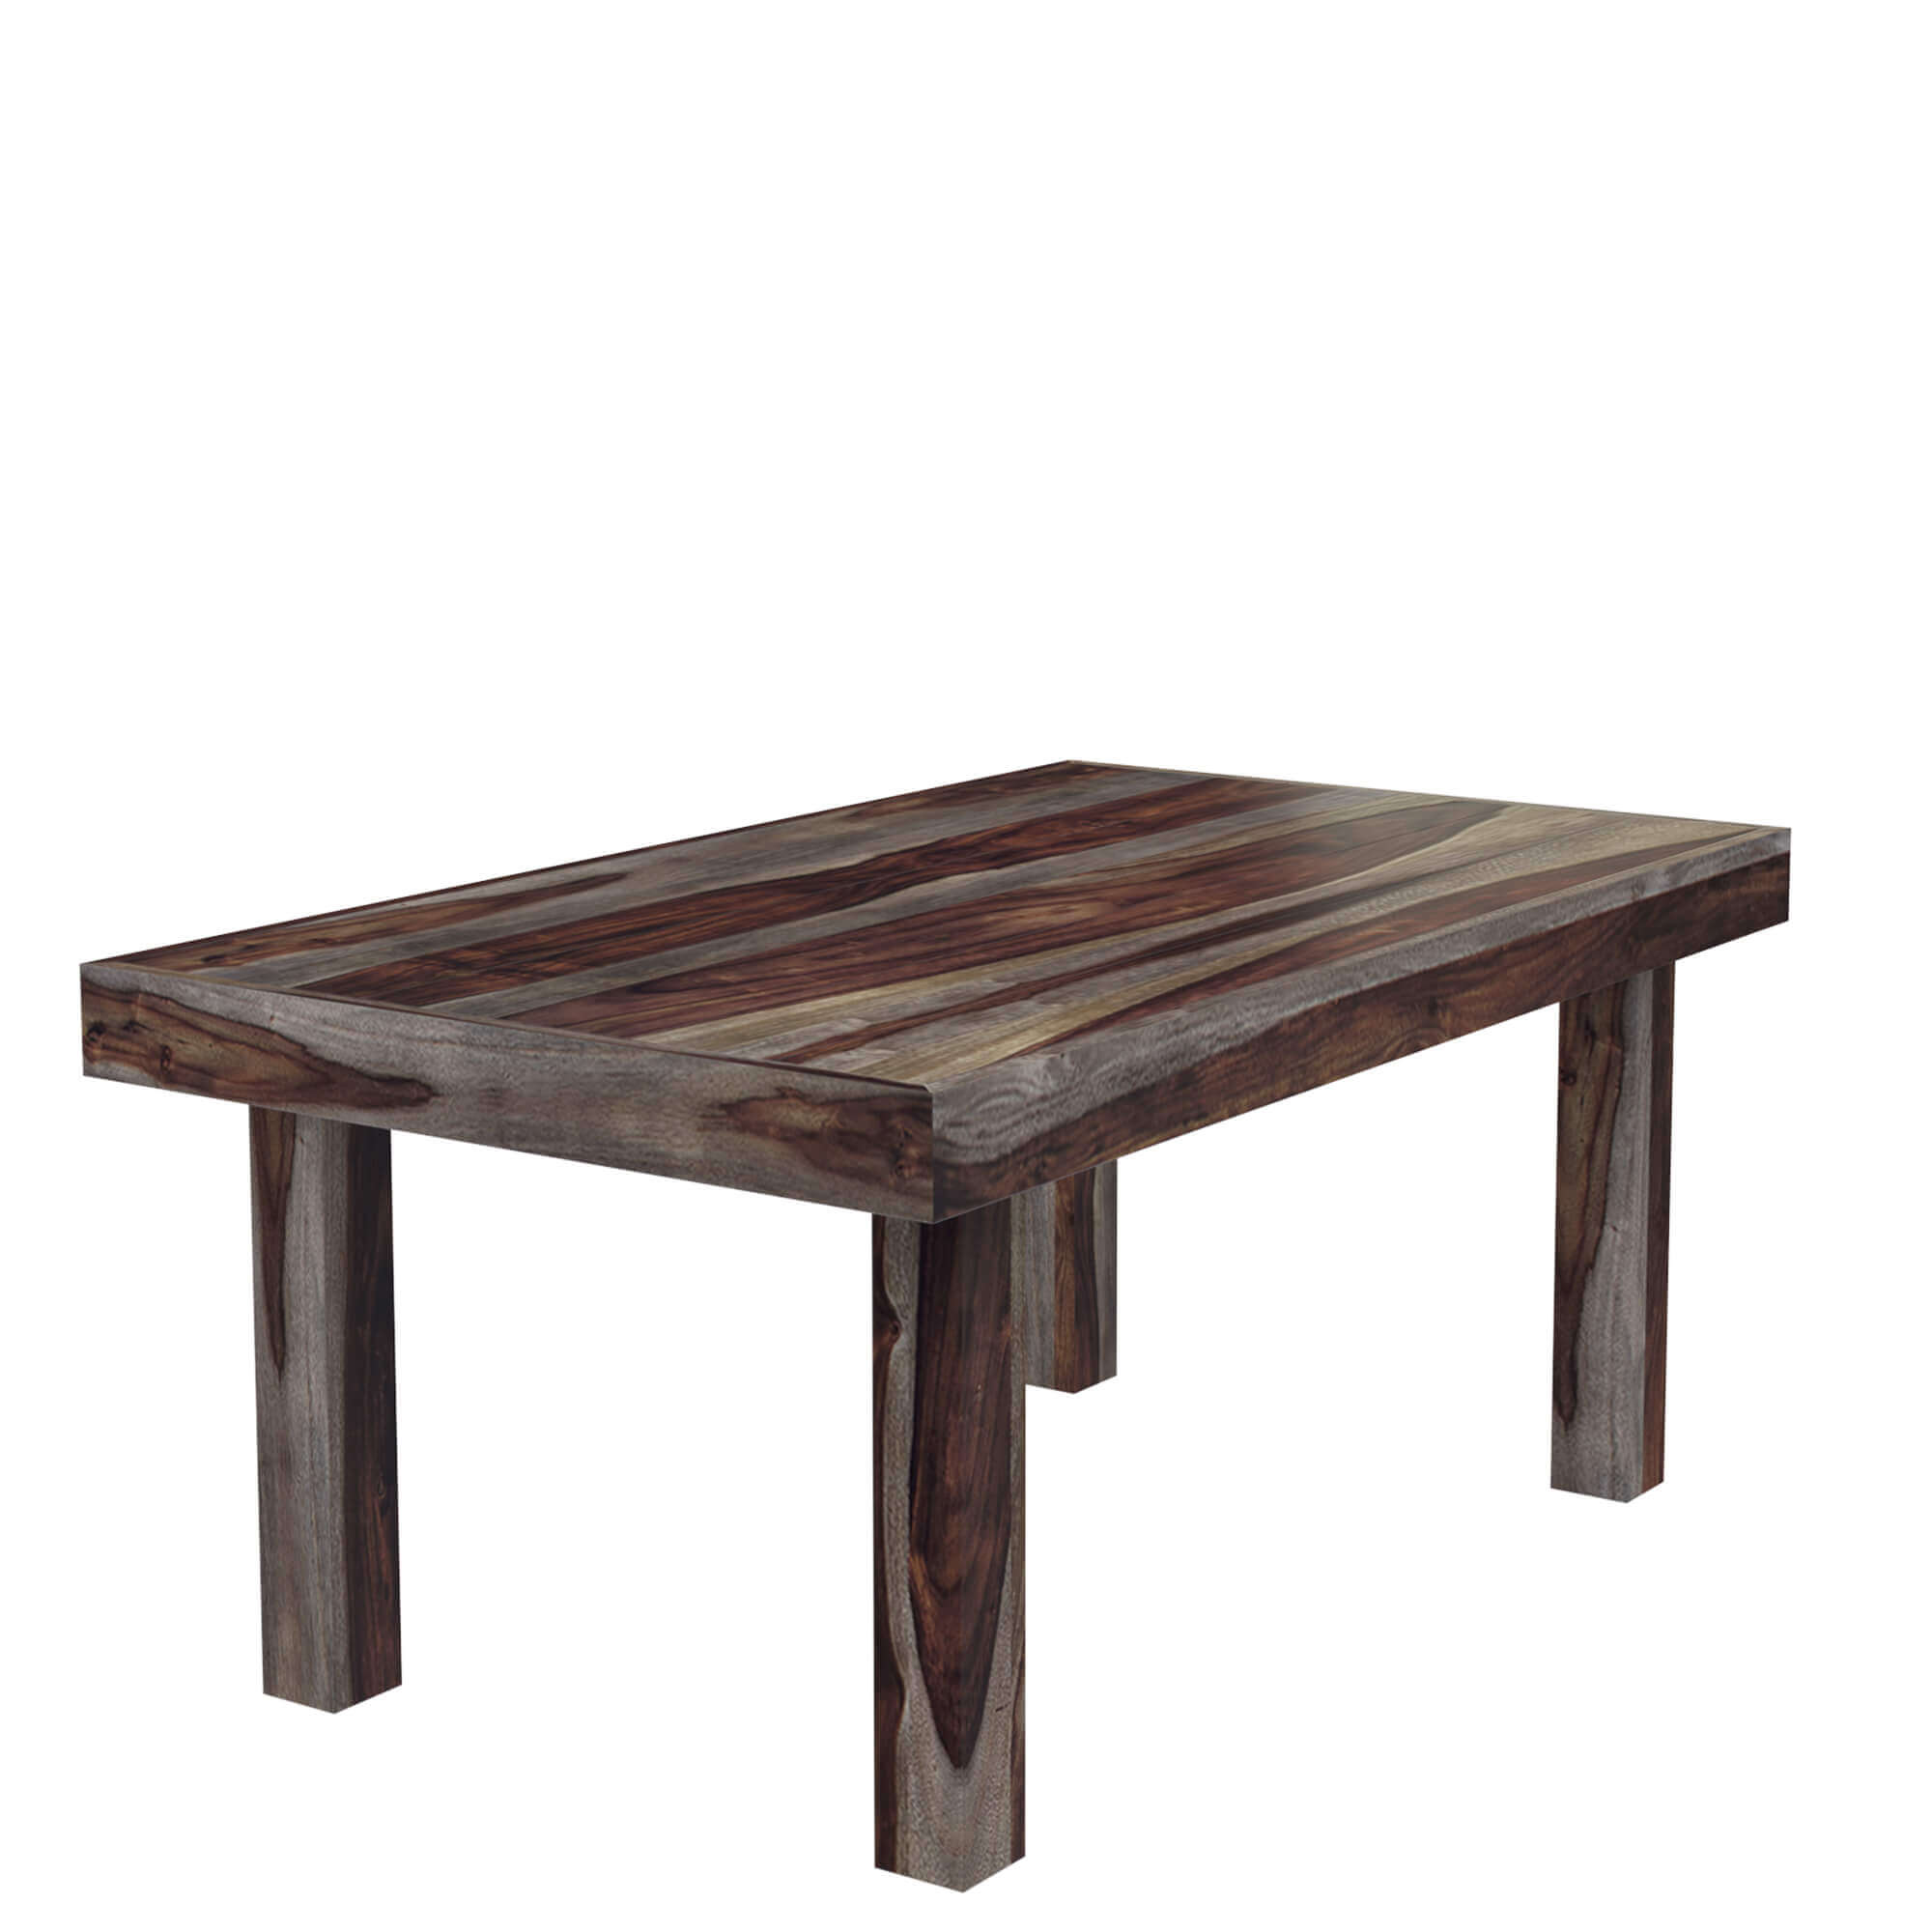 Rustic Wooden Dining Room Table ~ Frisco modern solid wood rectangular rustic dining room table